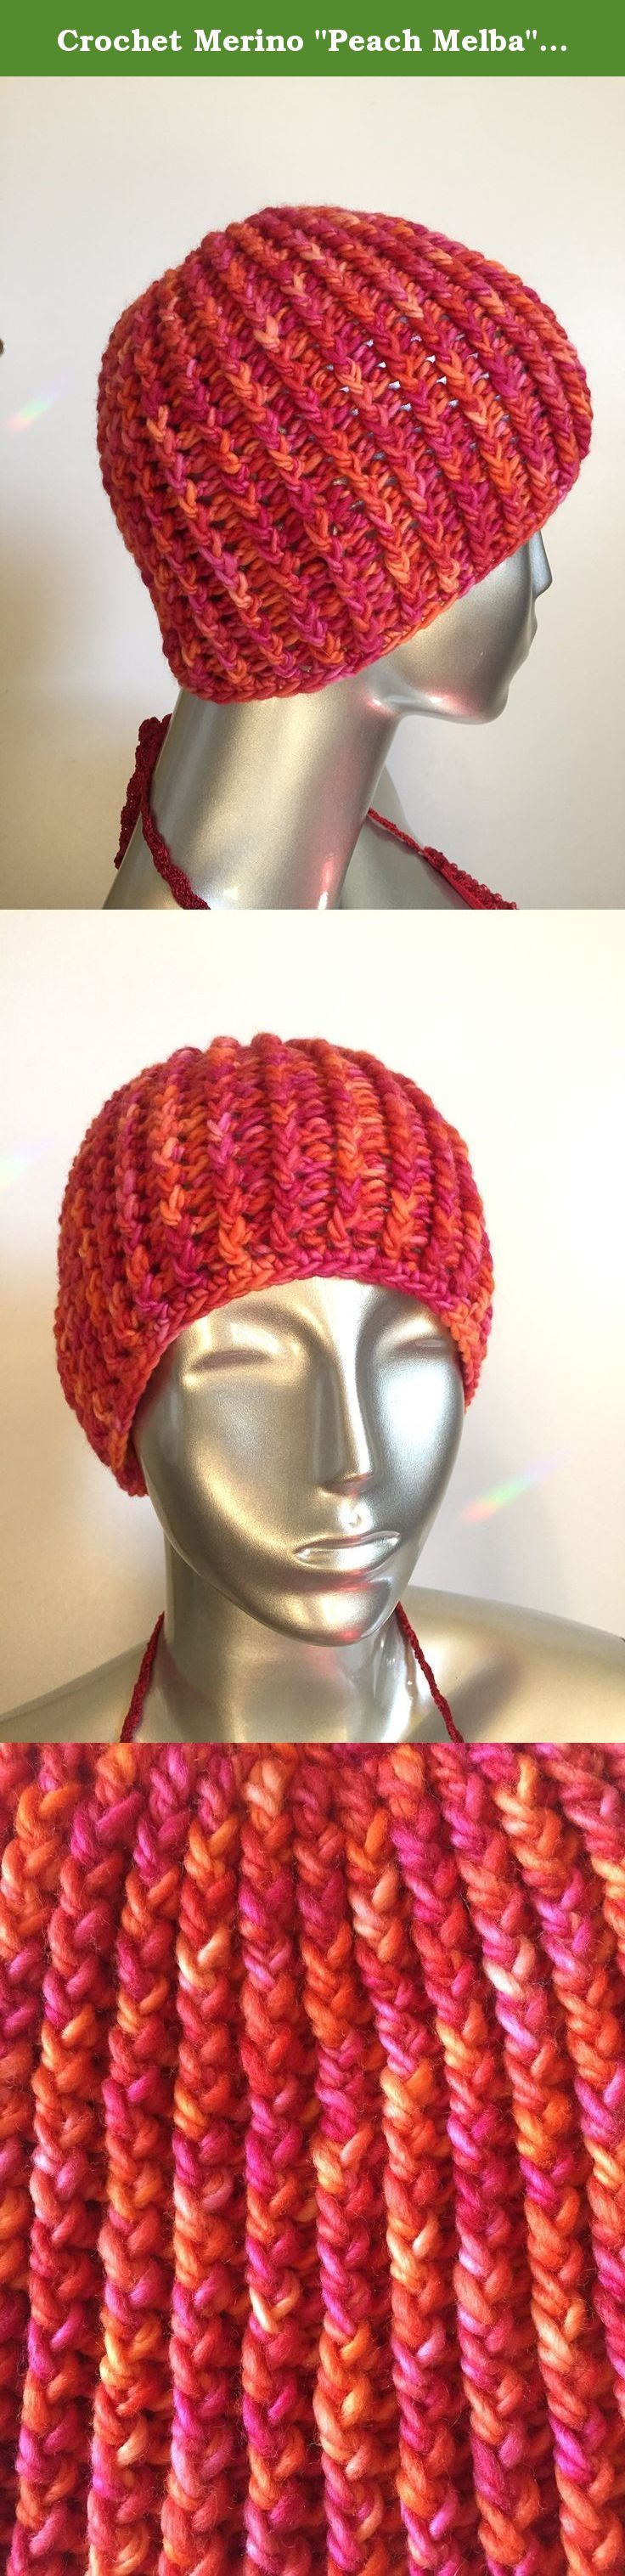 """Crochet Merino """"Peach Melba"""" Ribbed Hat. 8.5 inches in height, 18.5-22 inches around. Size: Medium 100% Merino Wool One of a kind."""